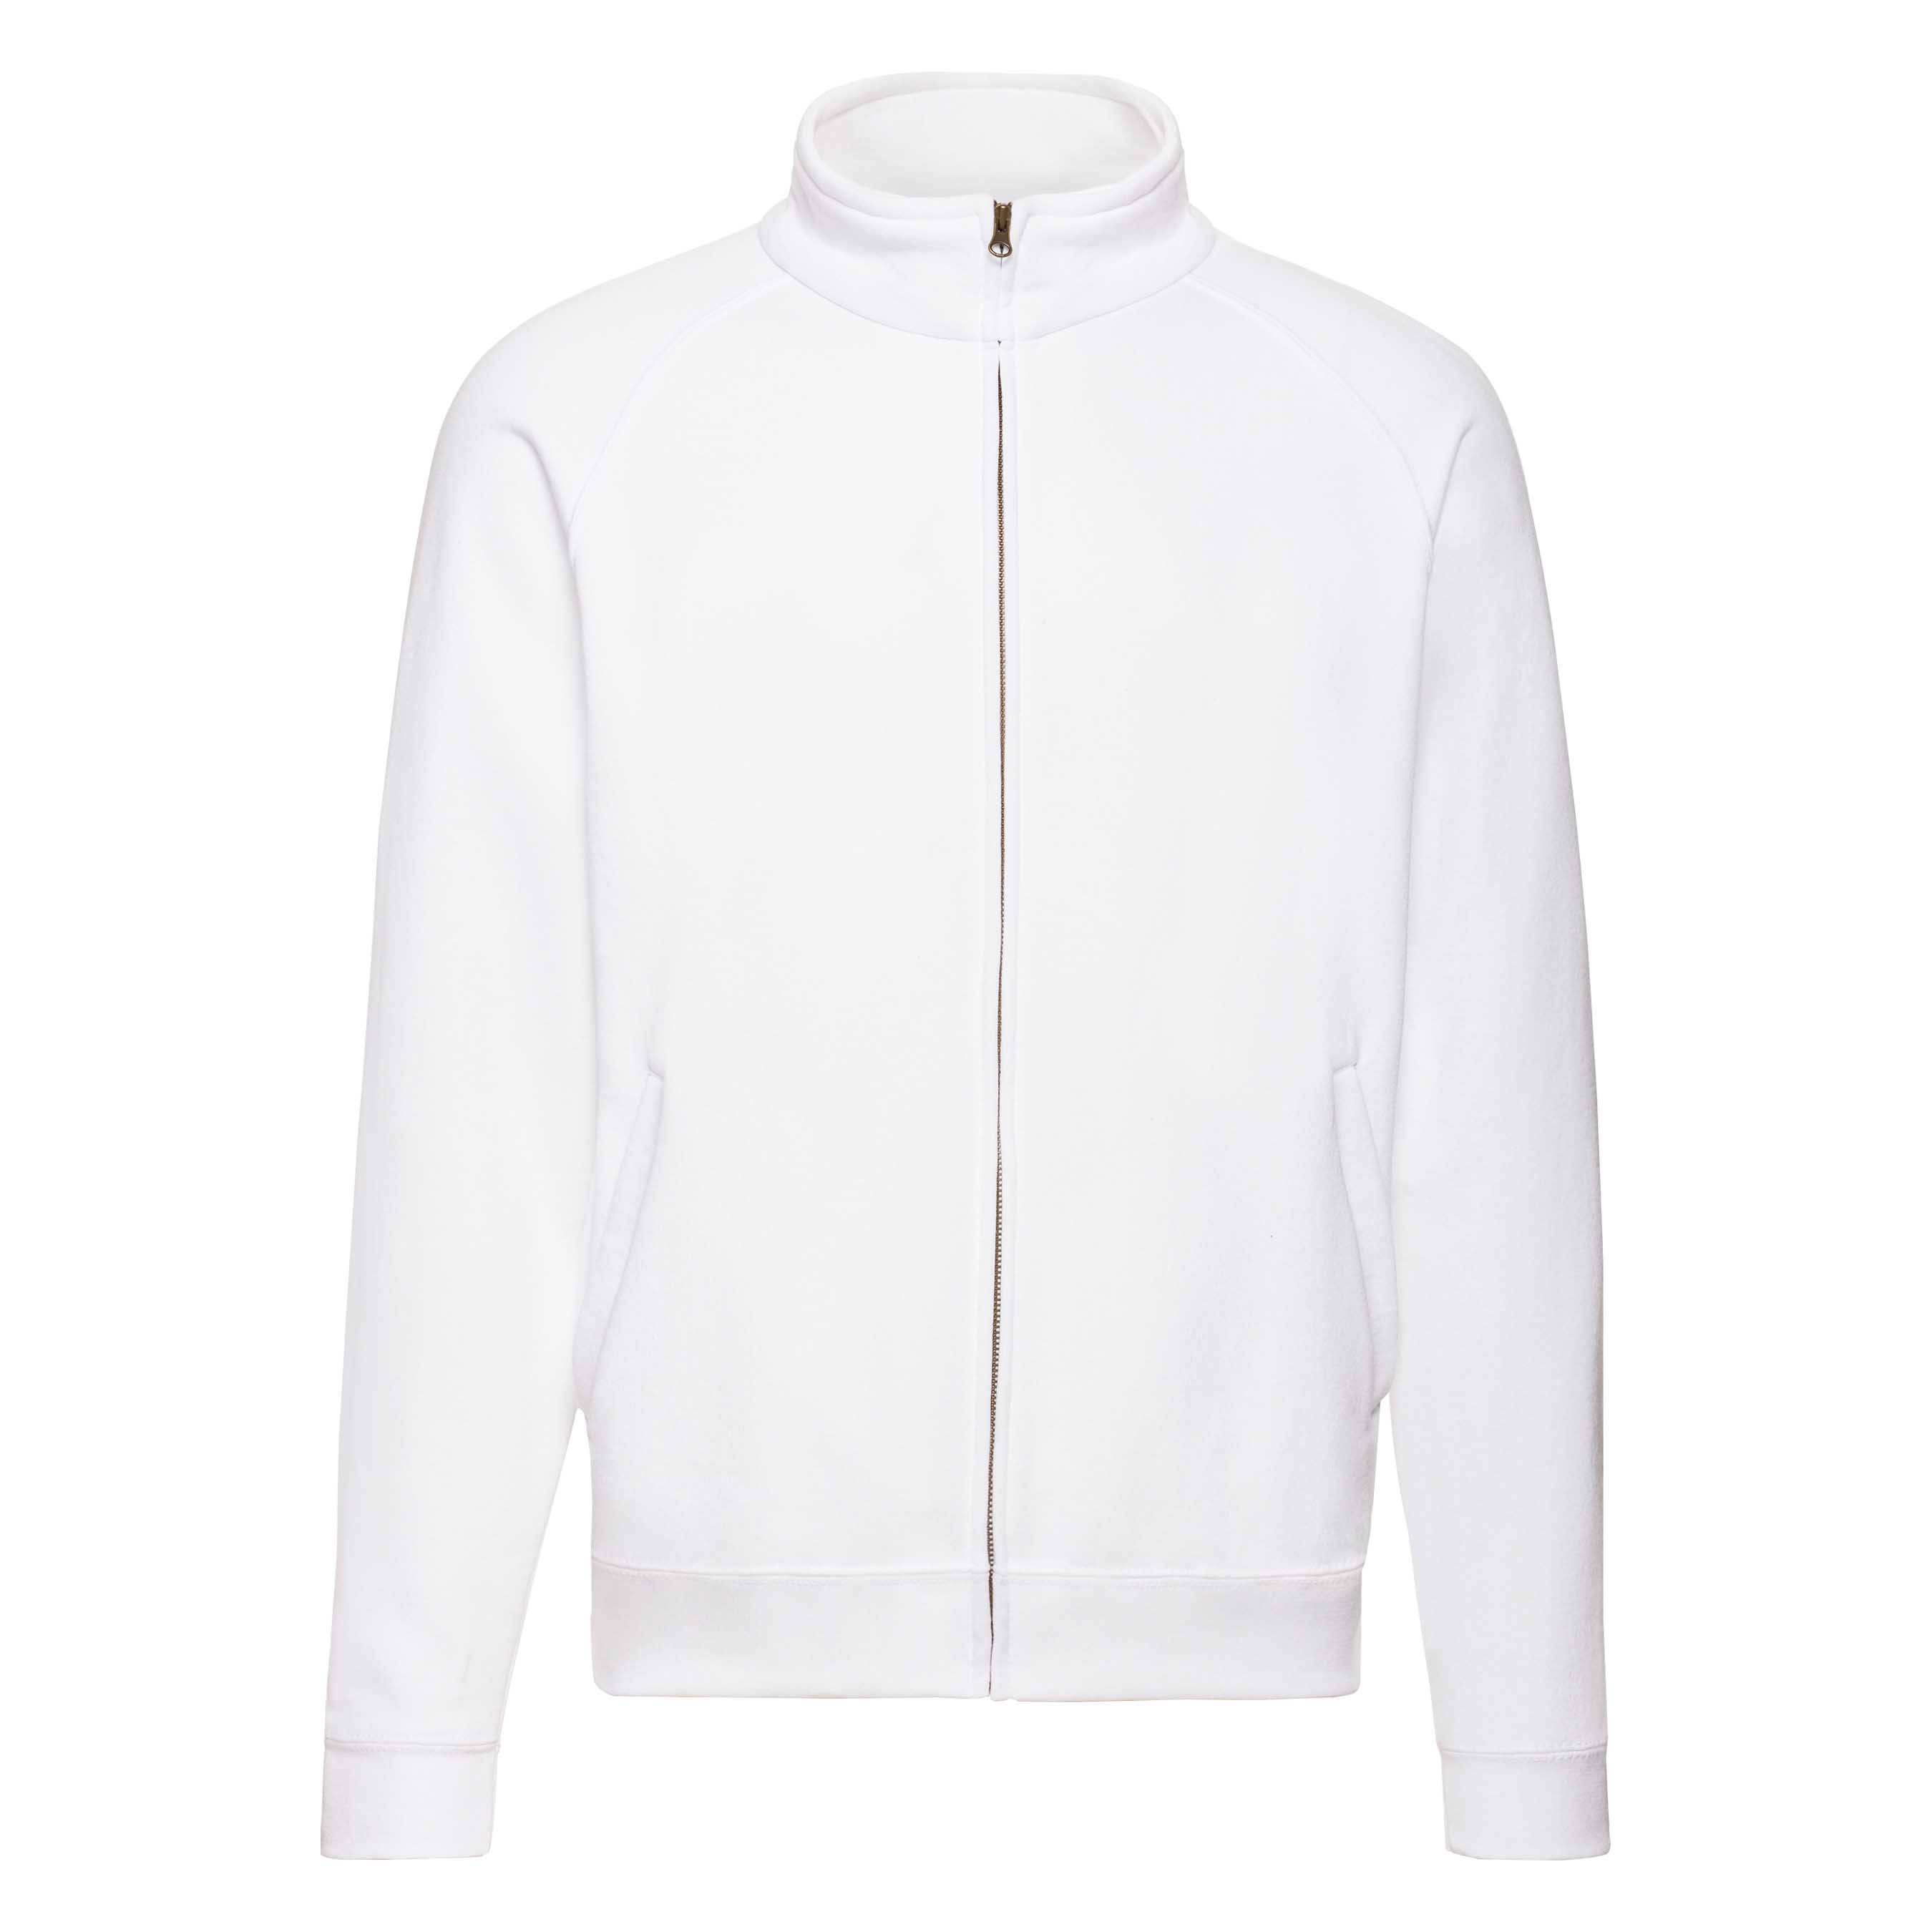 Bluza męska z zamkiem Sweat Jacket | Fruit of the Loom